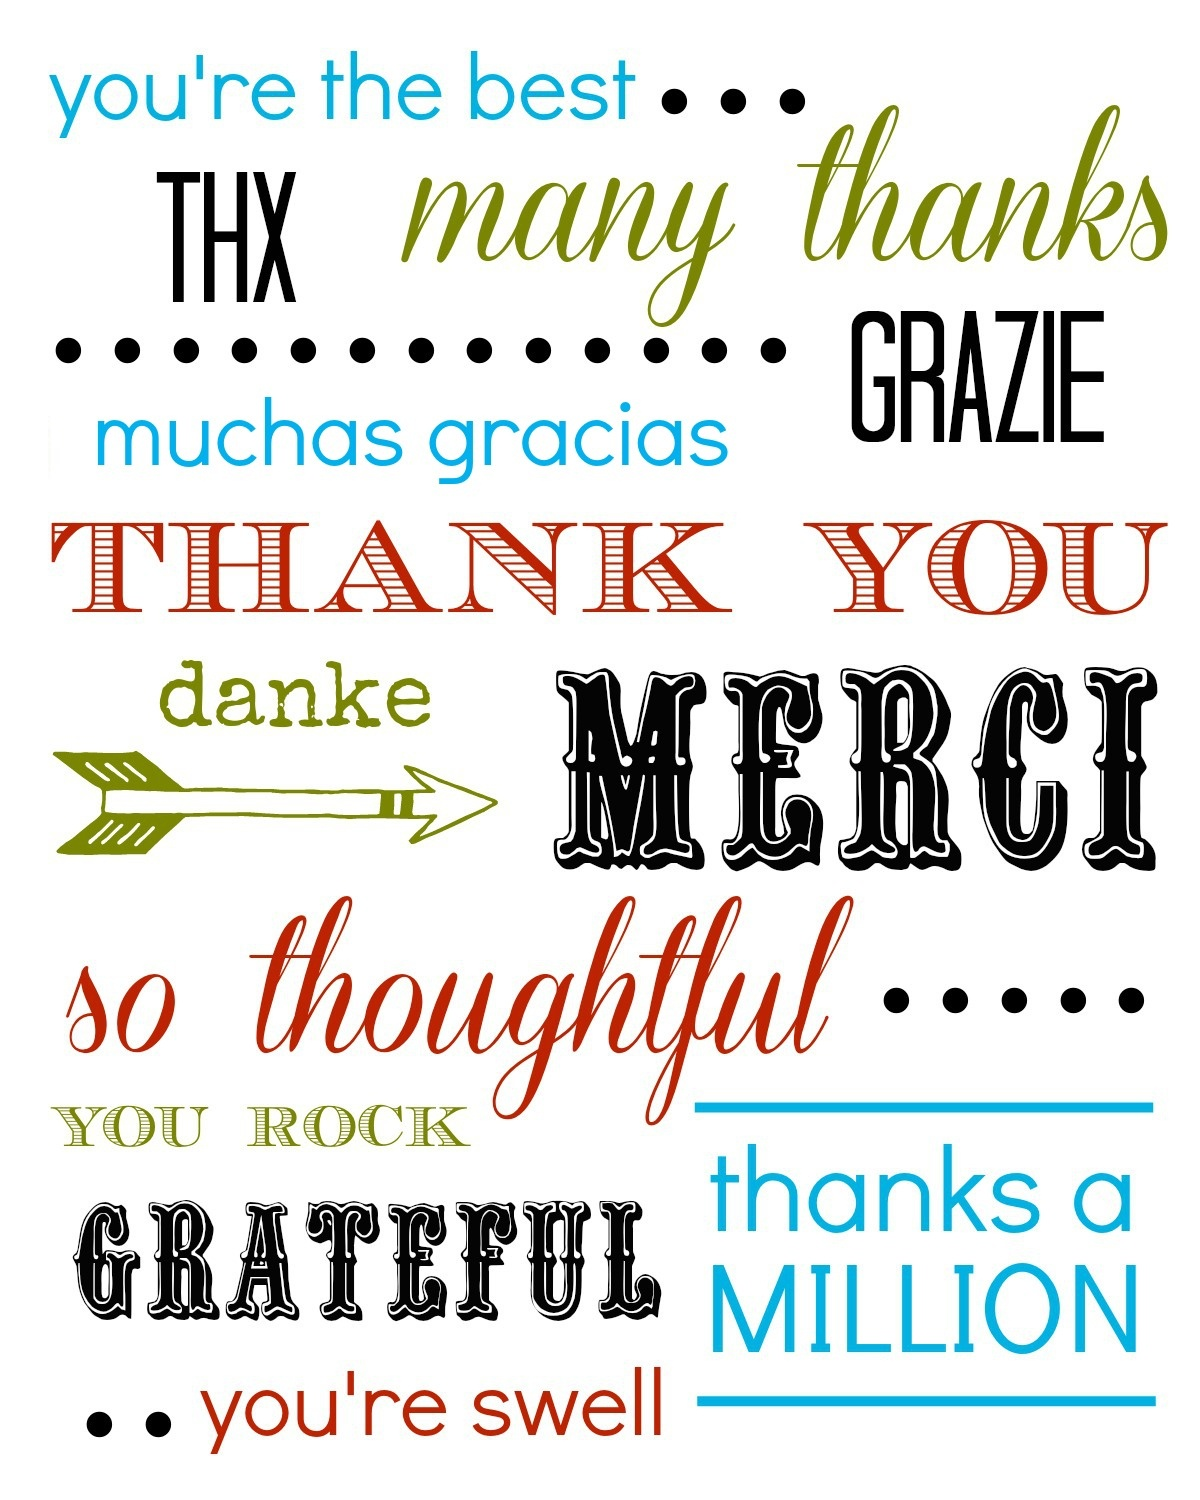 Thank You Card Free Printable - Free Printable Thank You Cards